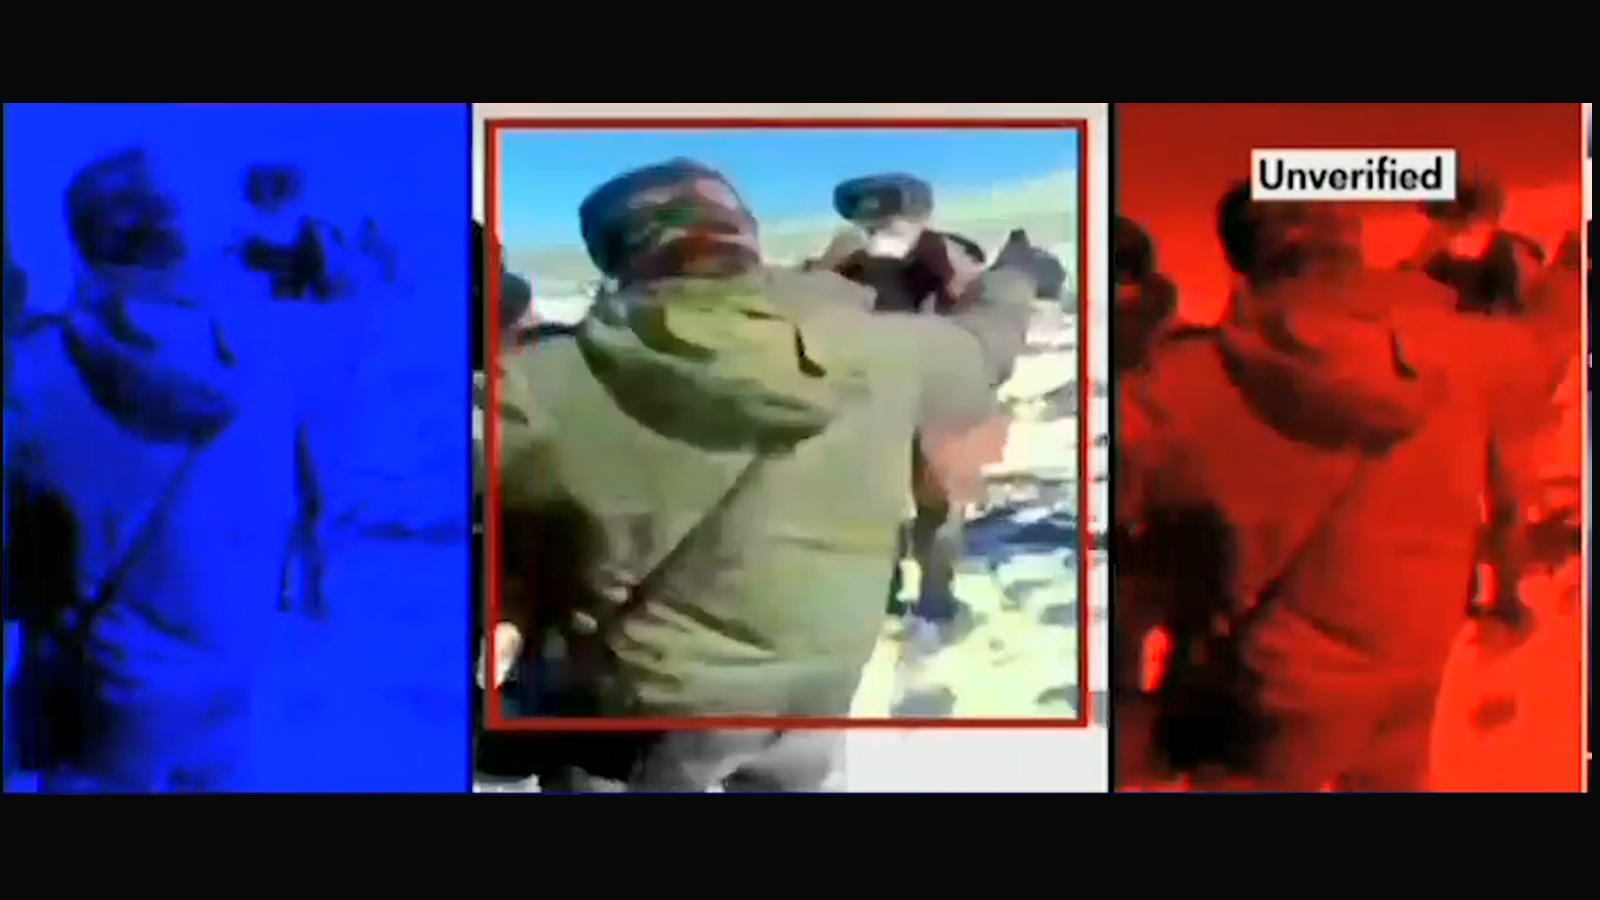 lac-standoff-unverified-video-shows-chinese-troops-pushed-back